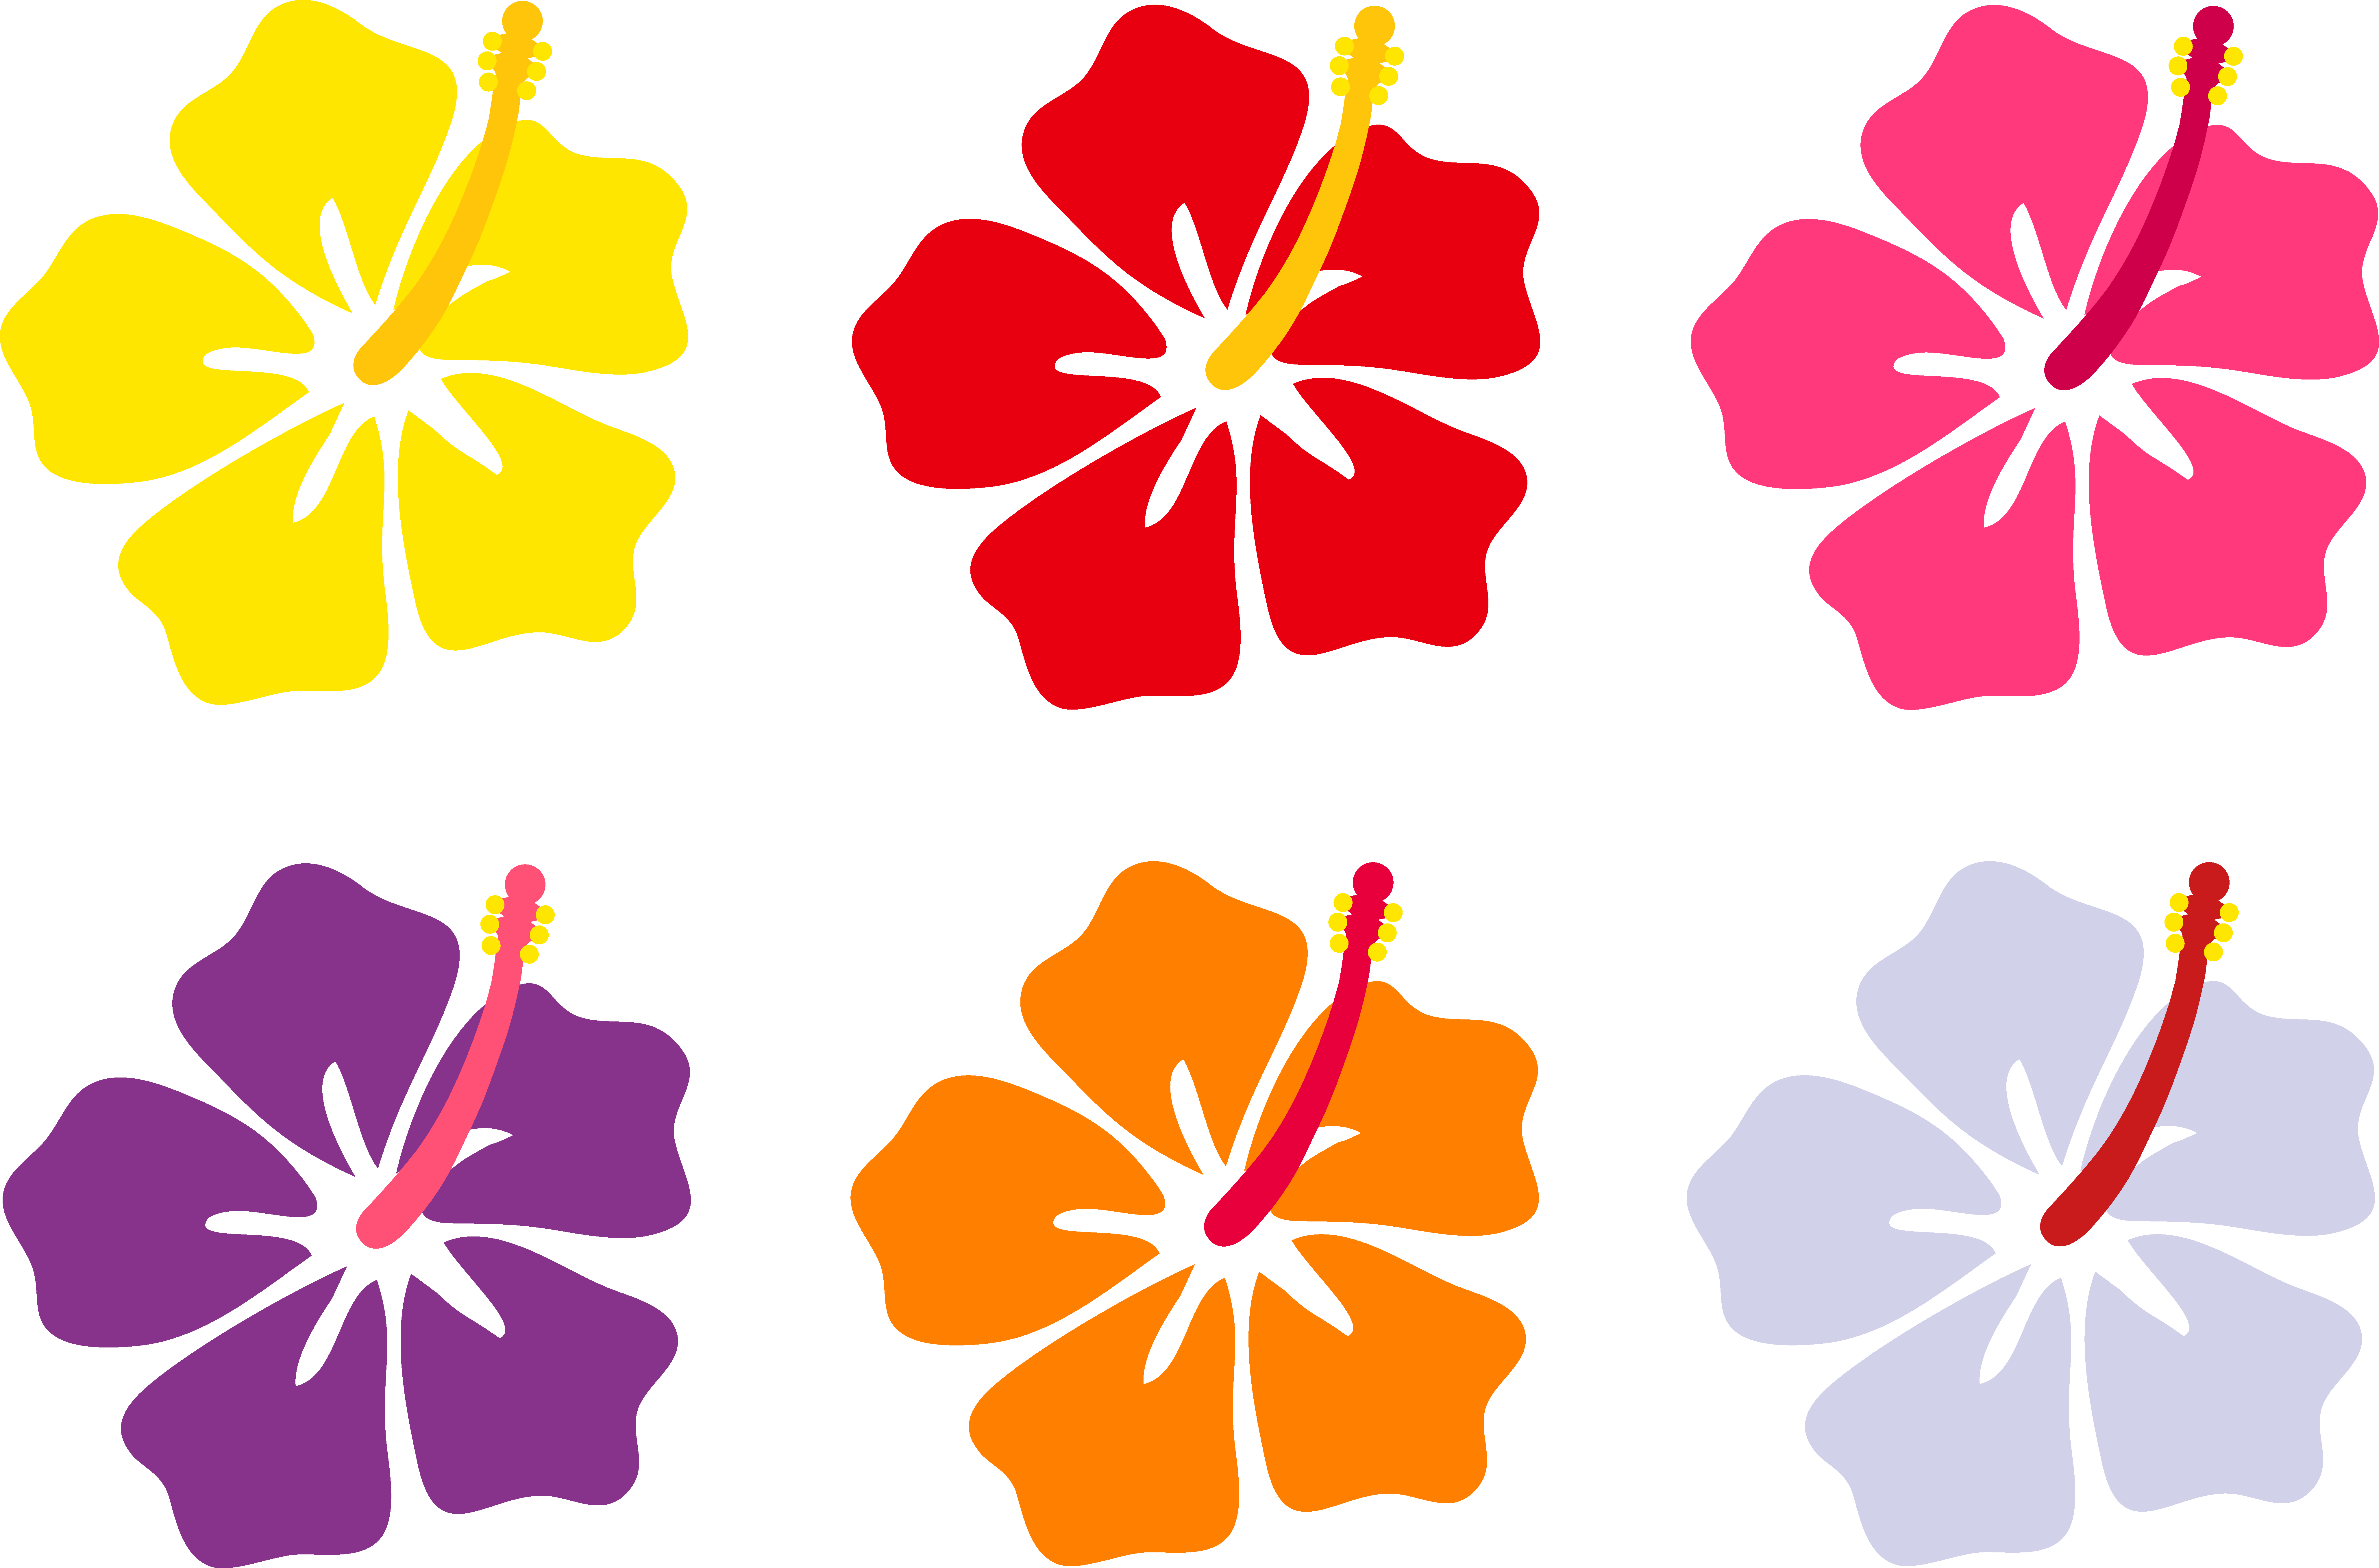 Free luau wallpaper download. Lei vector image black and white library